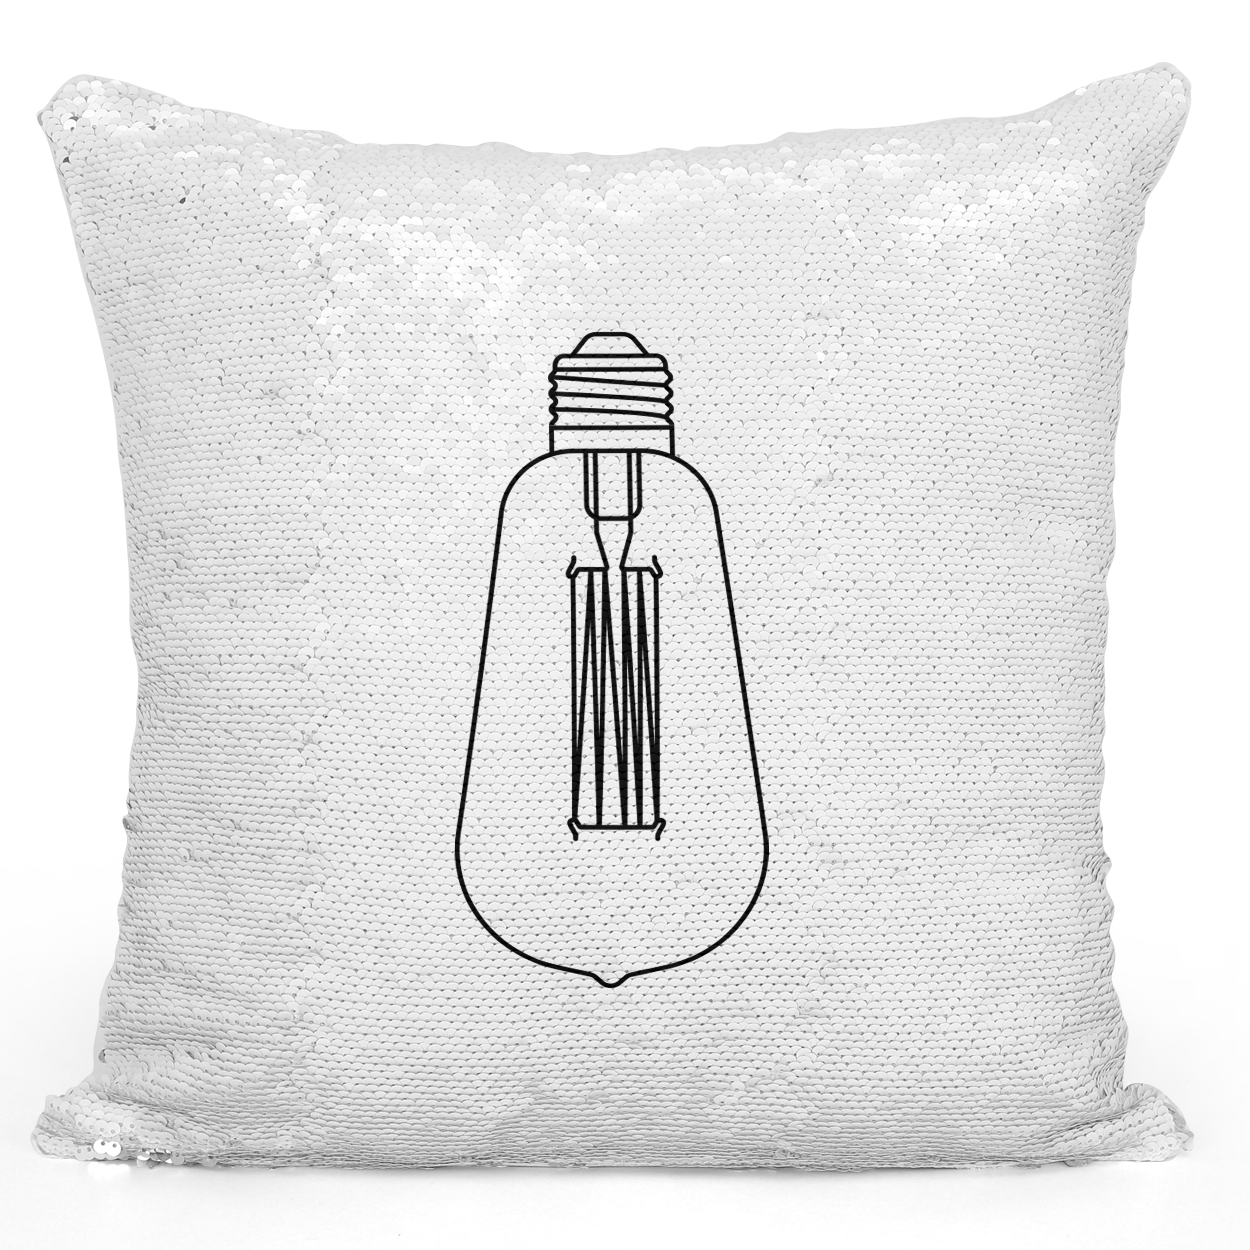 Sequin Pillow Magic Mermaid Throw Pillow Edison Bulb Vintage Style Bulb Pillow - High Quality White 16 x 16 inch Square Livingroom Sofa Couch Pillow Loud Universe